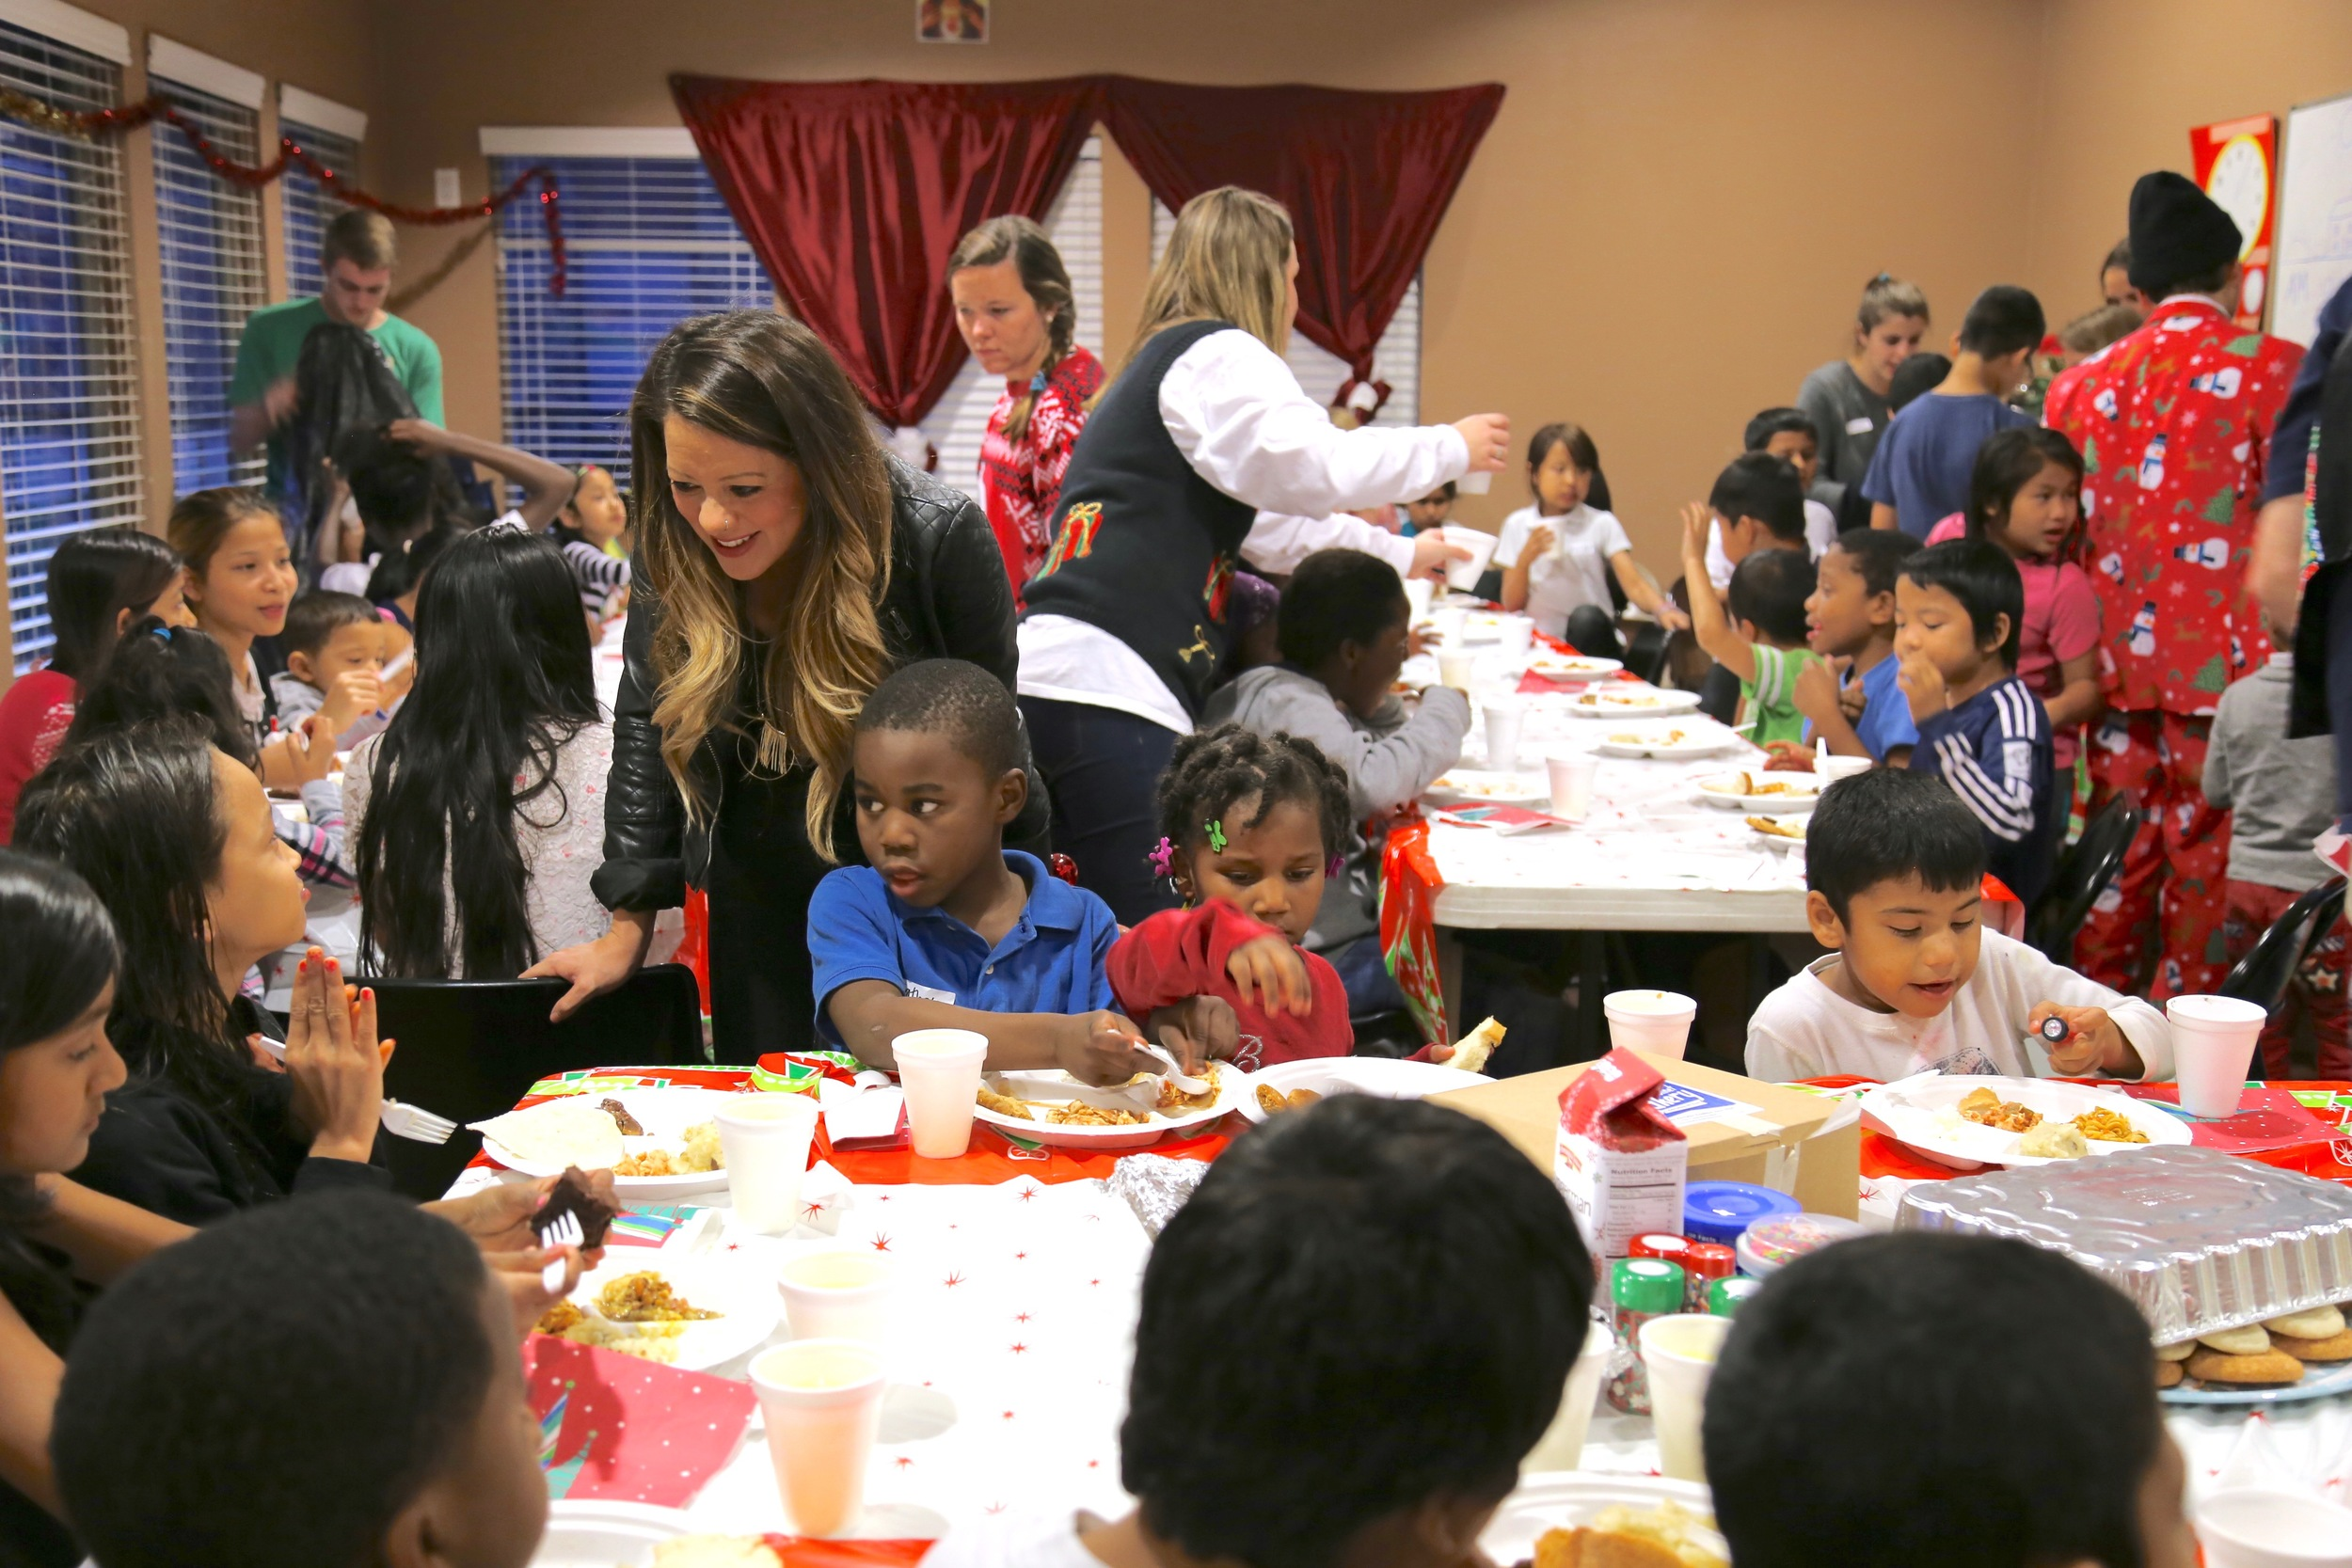 Our kids' program's annual Christmas party